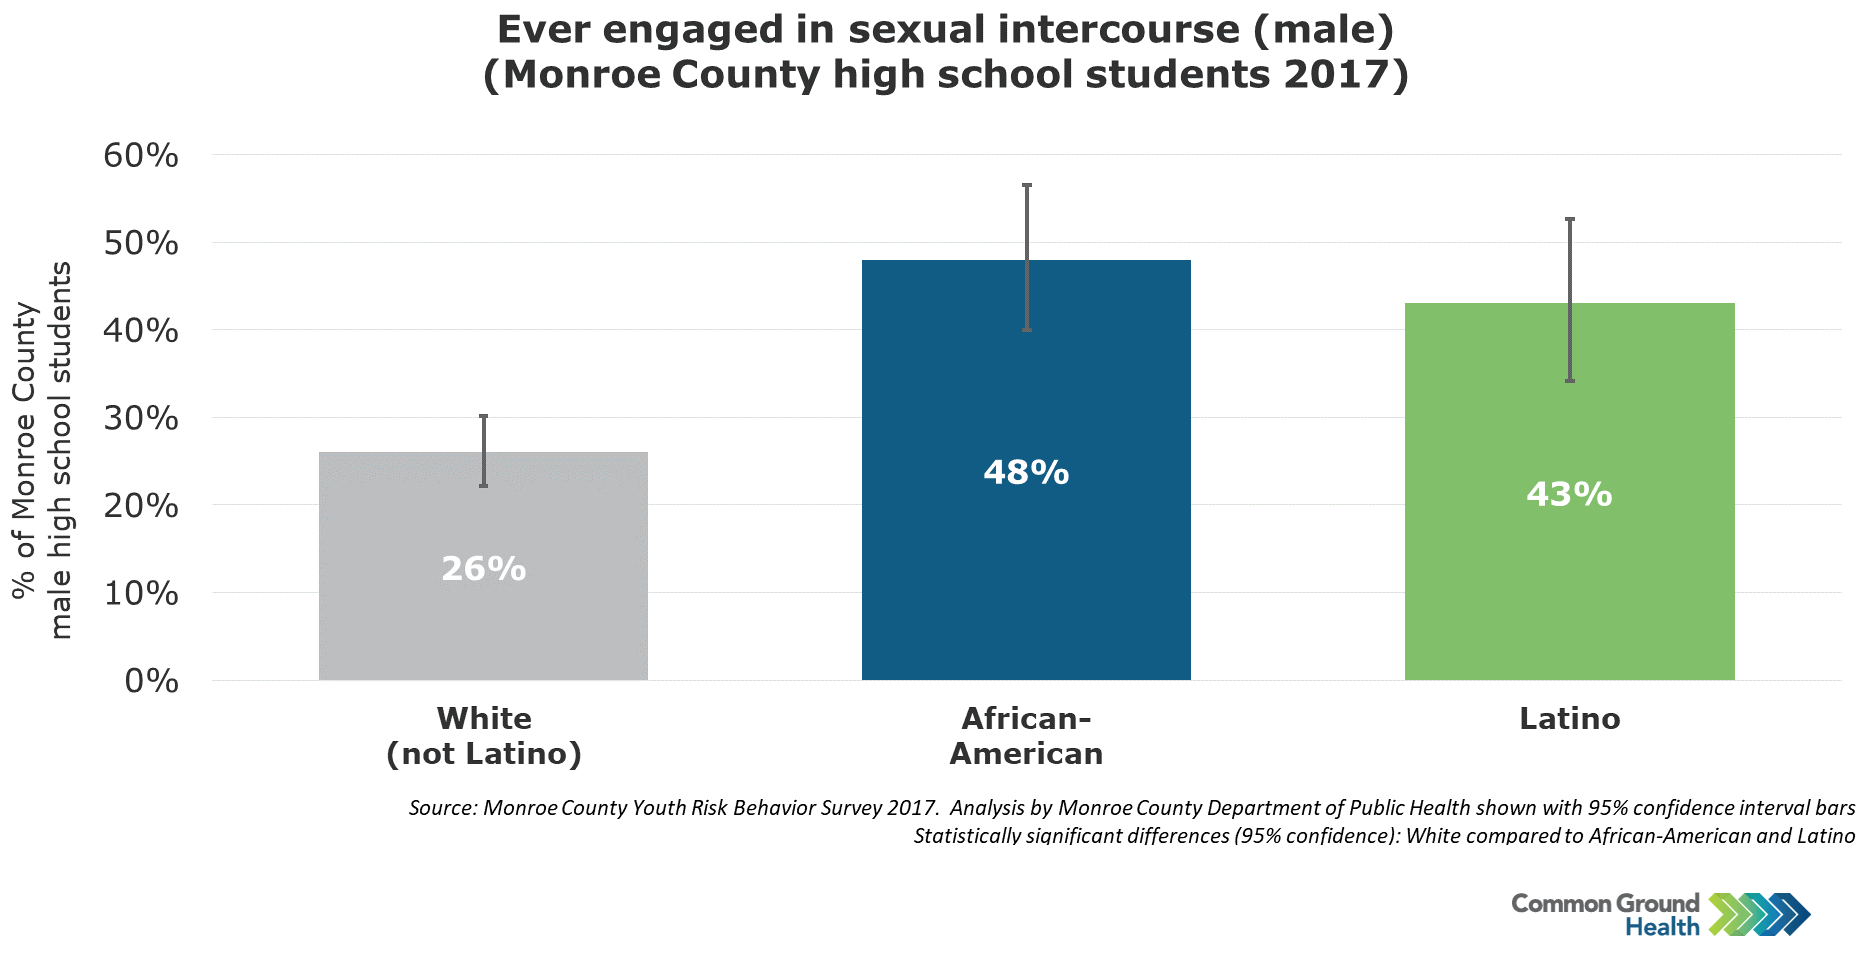 Ever Engaged in Sexual Intercourse, Males